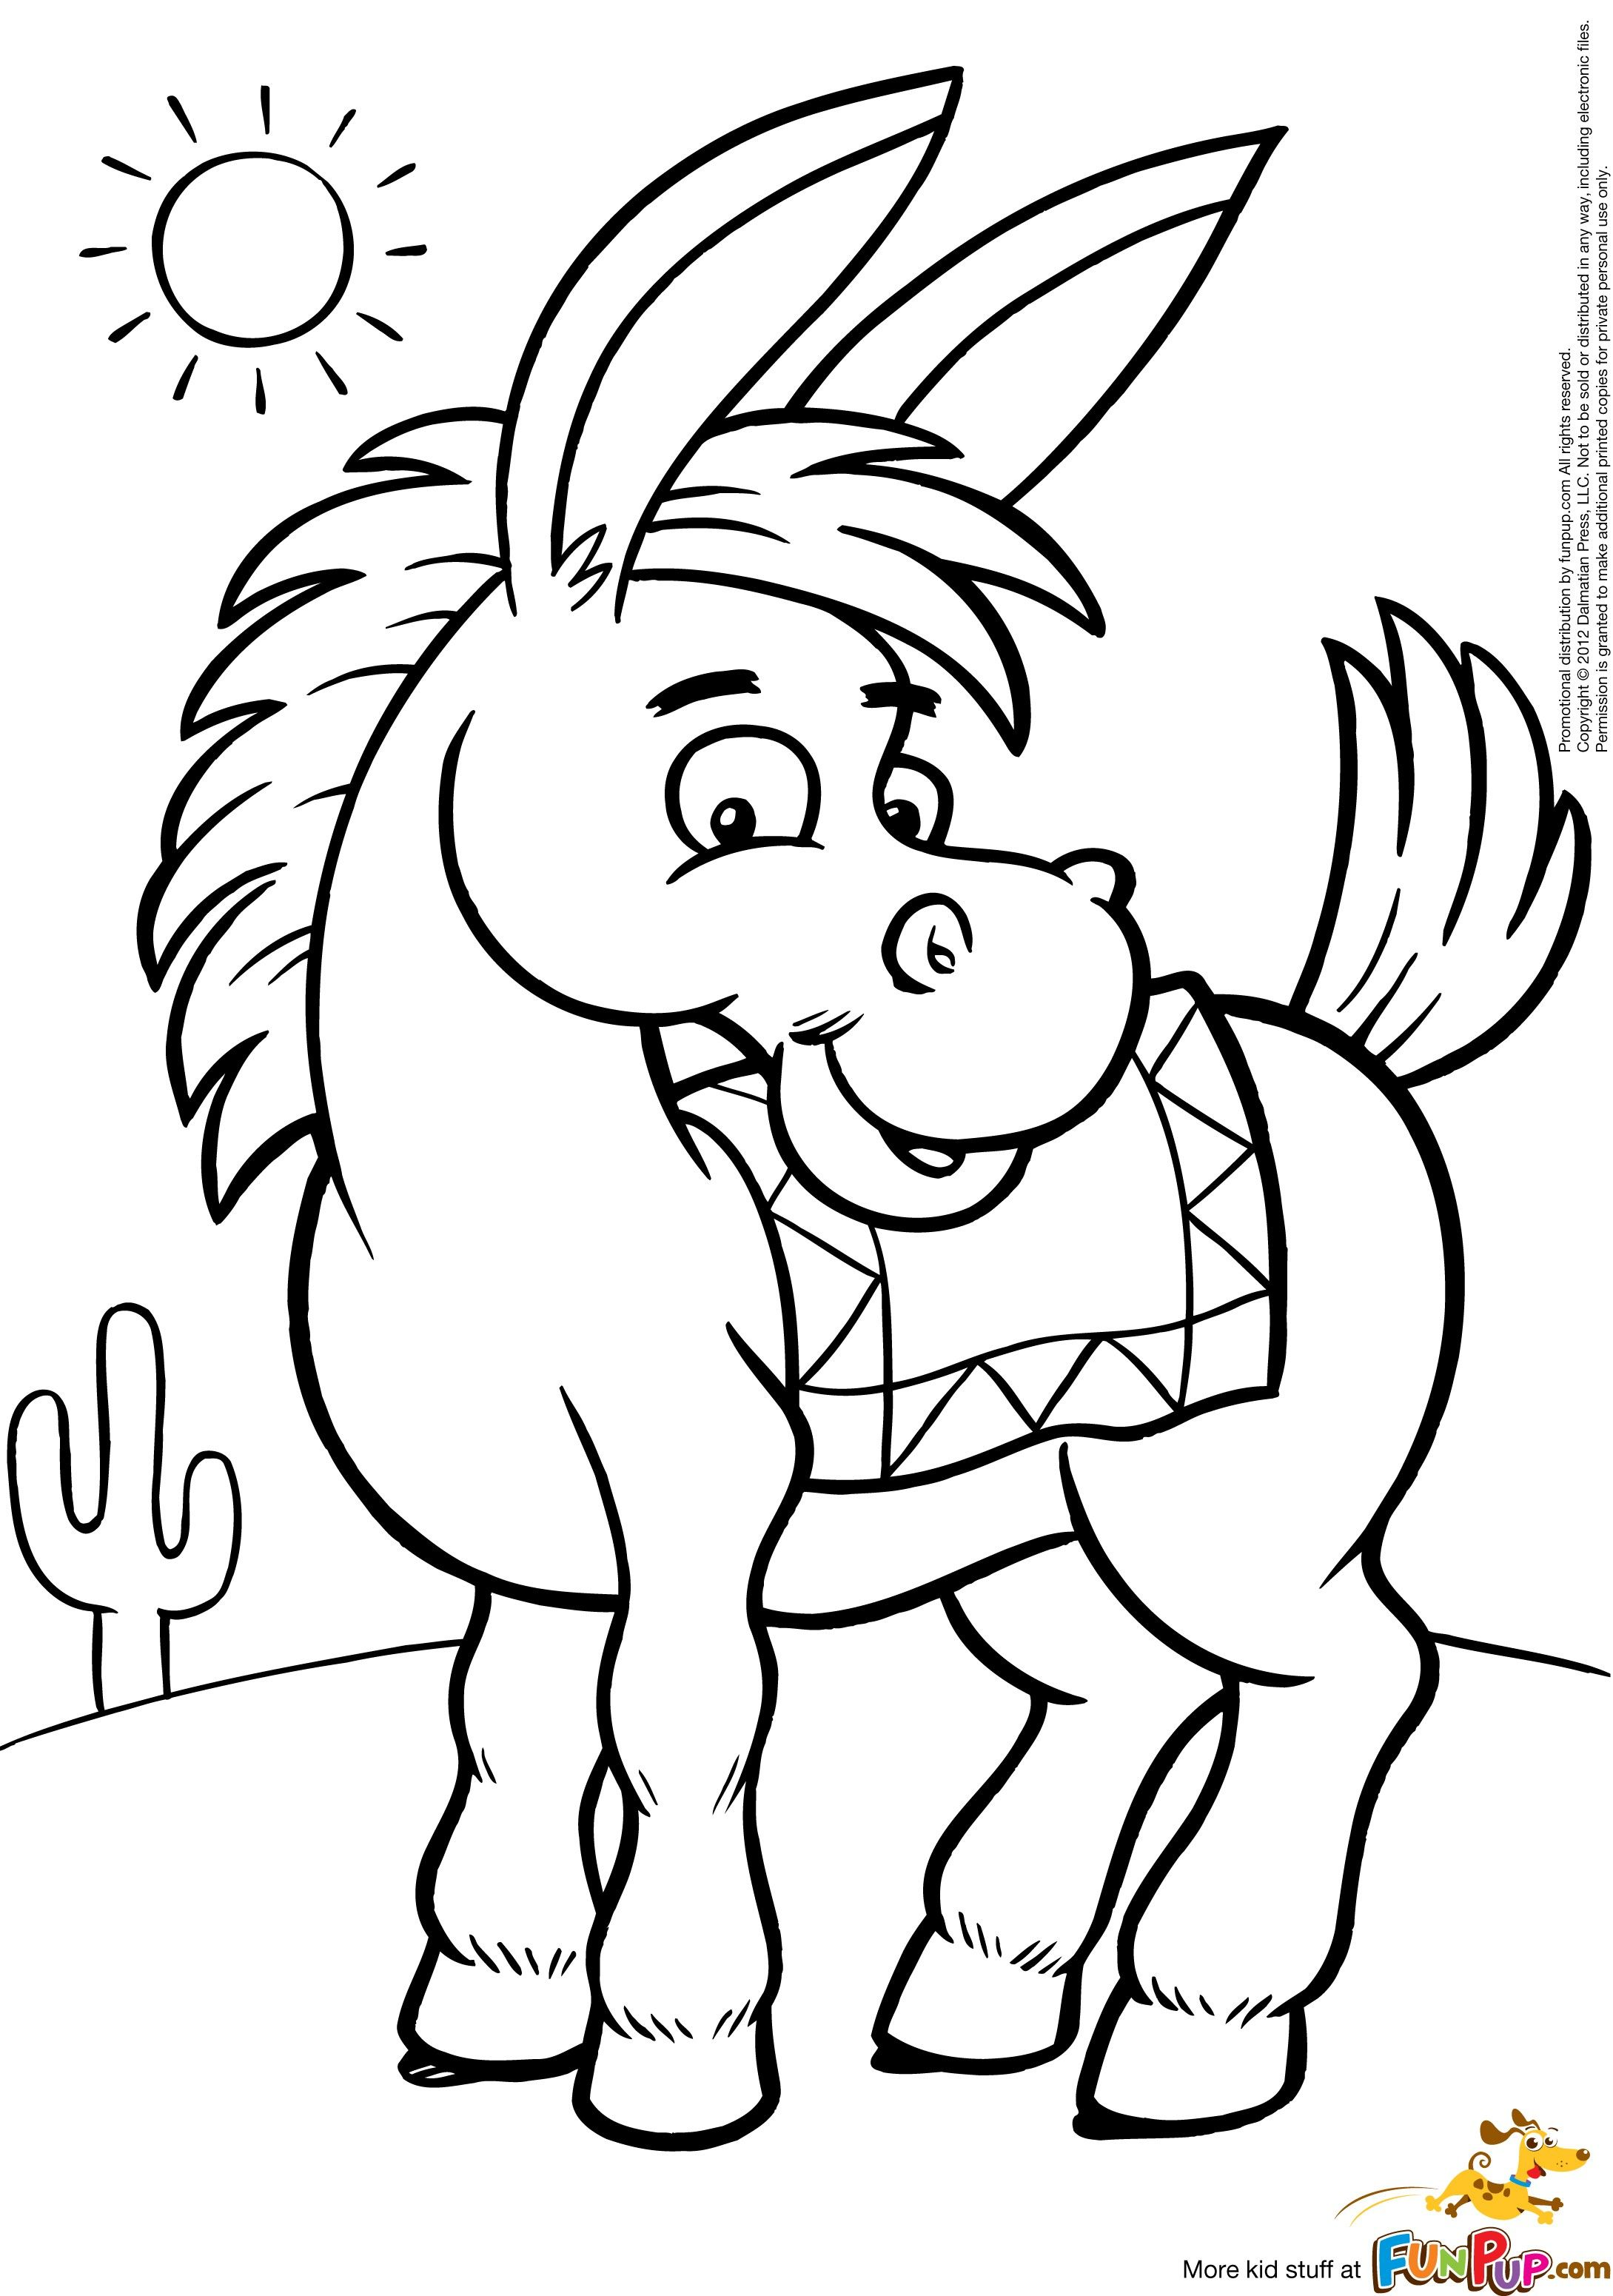 Donkey Coloring Pages Printable | ÁLLATOK 4 | Pinterest | Colorear ...